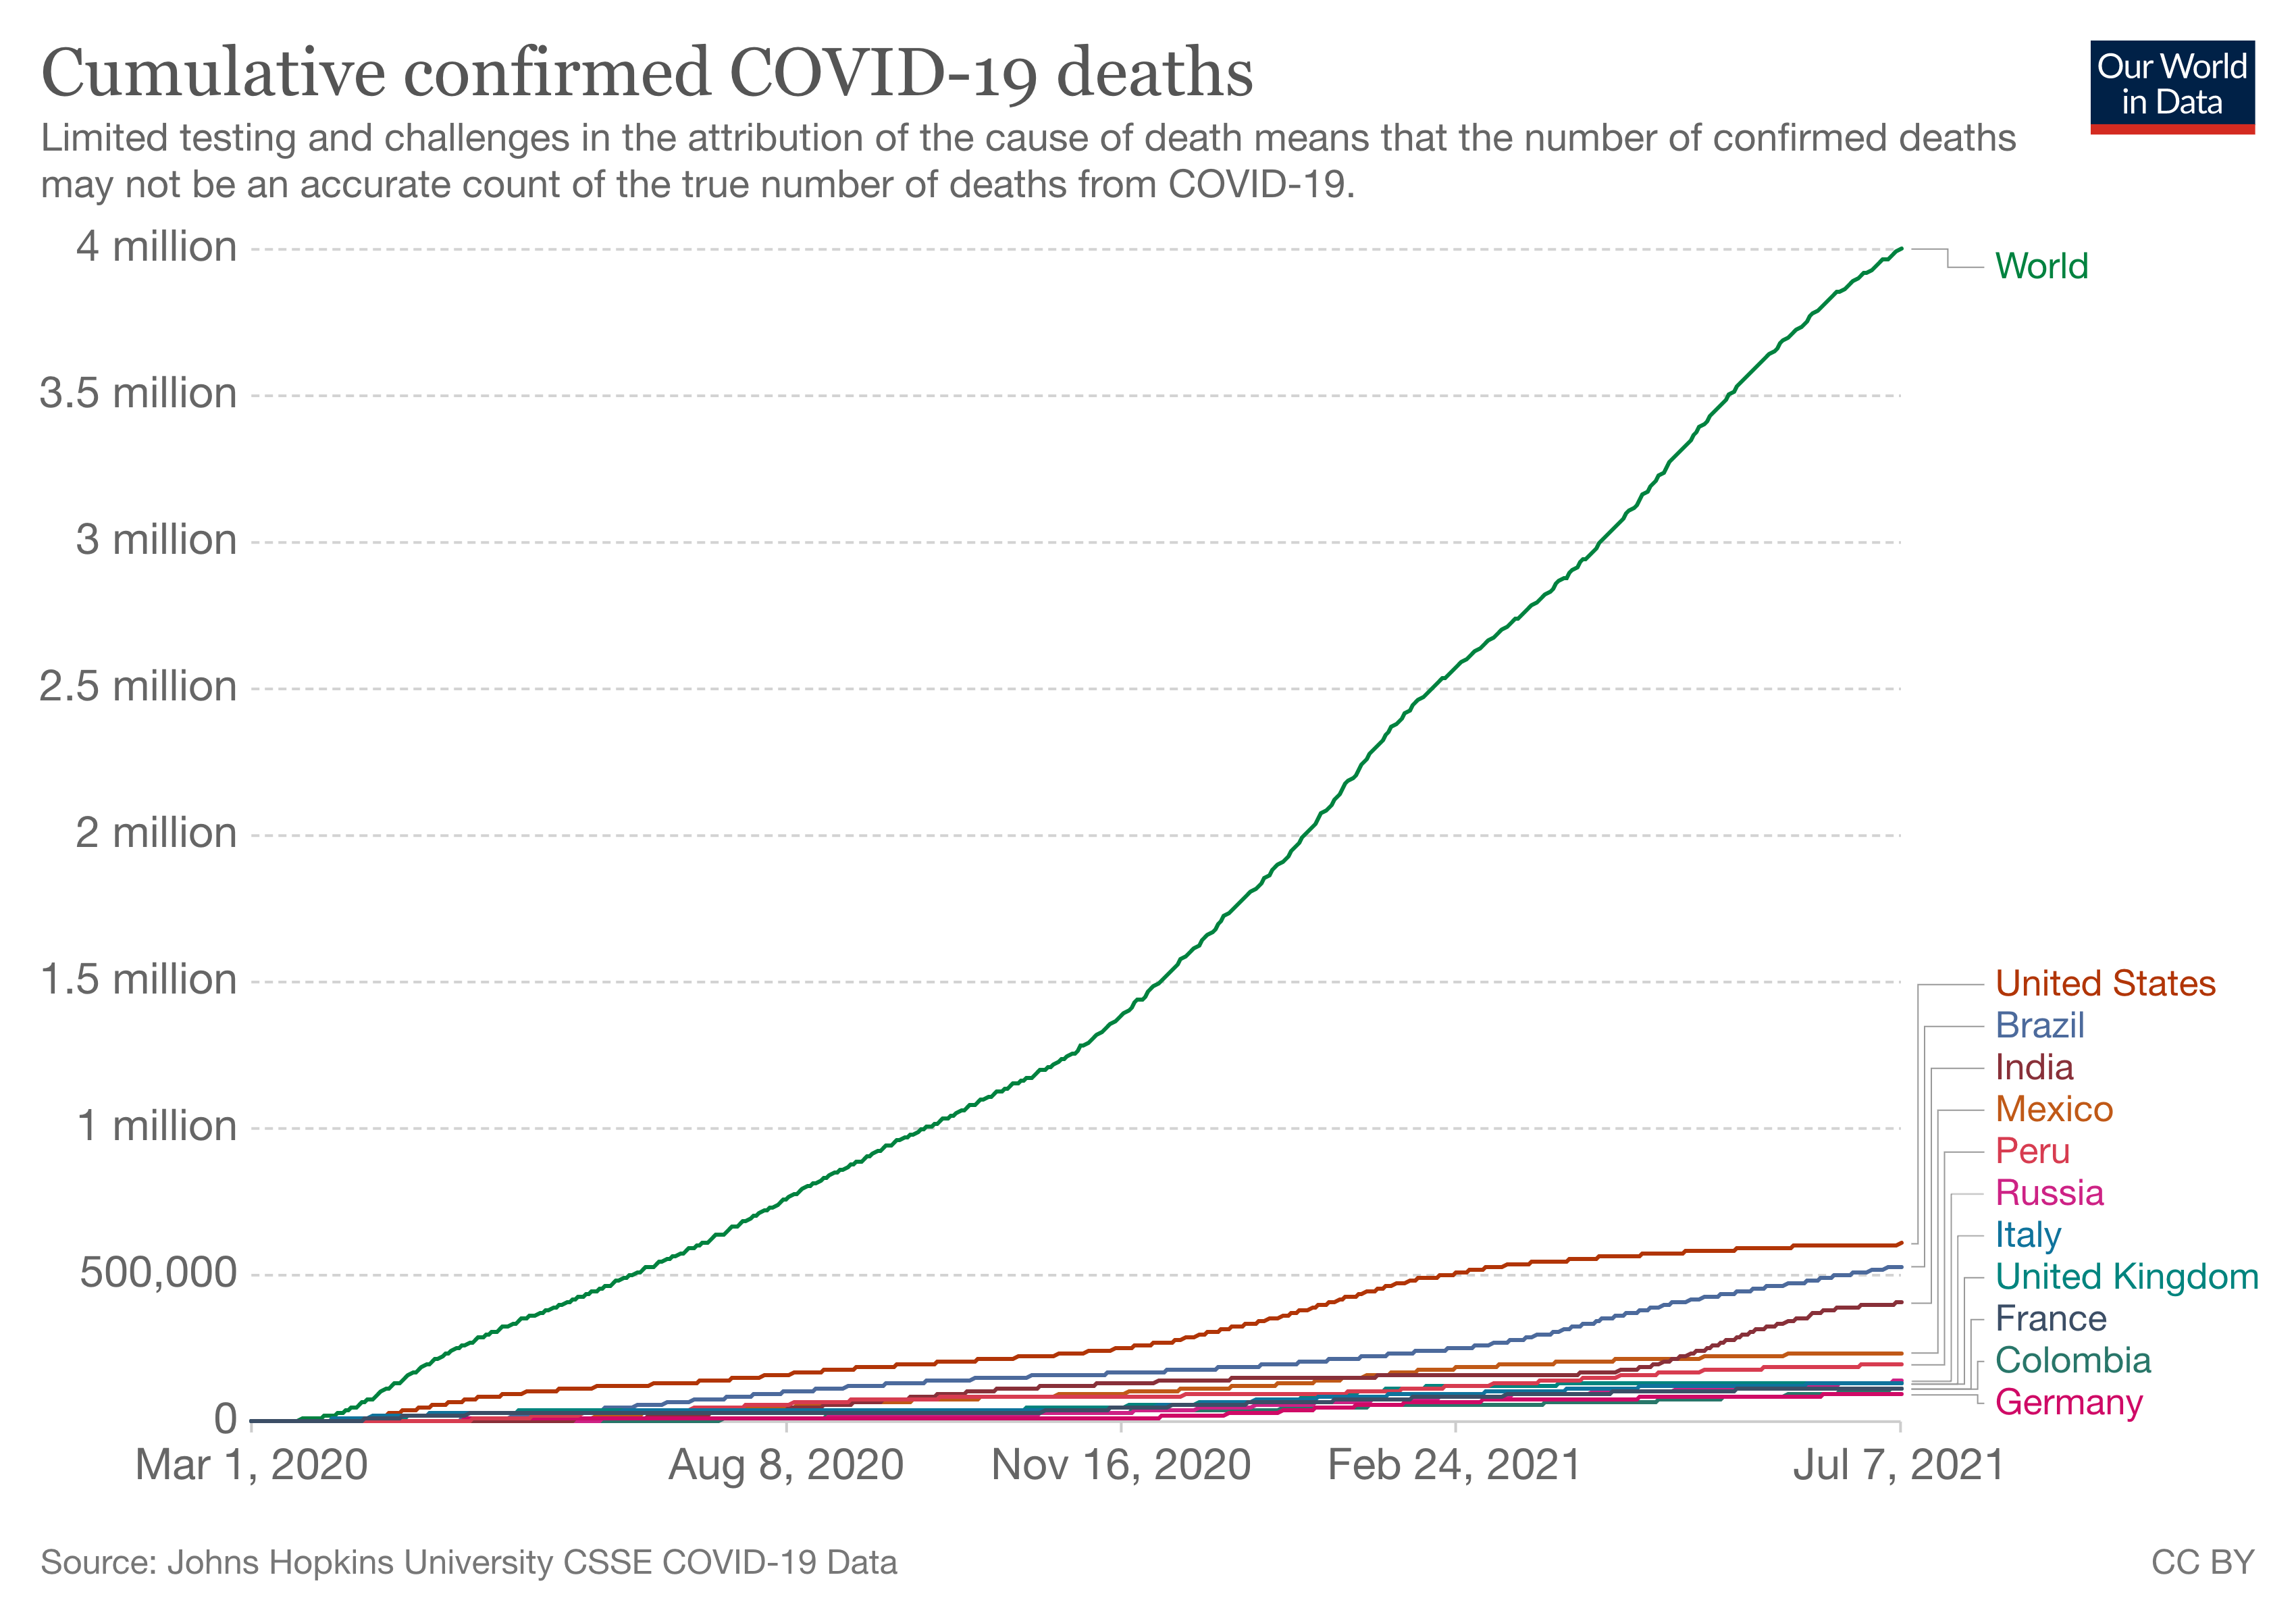 Cumulative confirmed COVID-19 deaths globally and in selected countries.